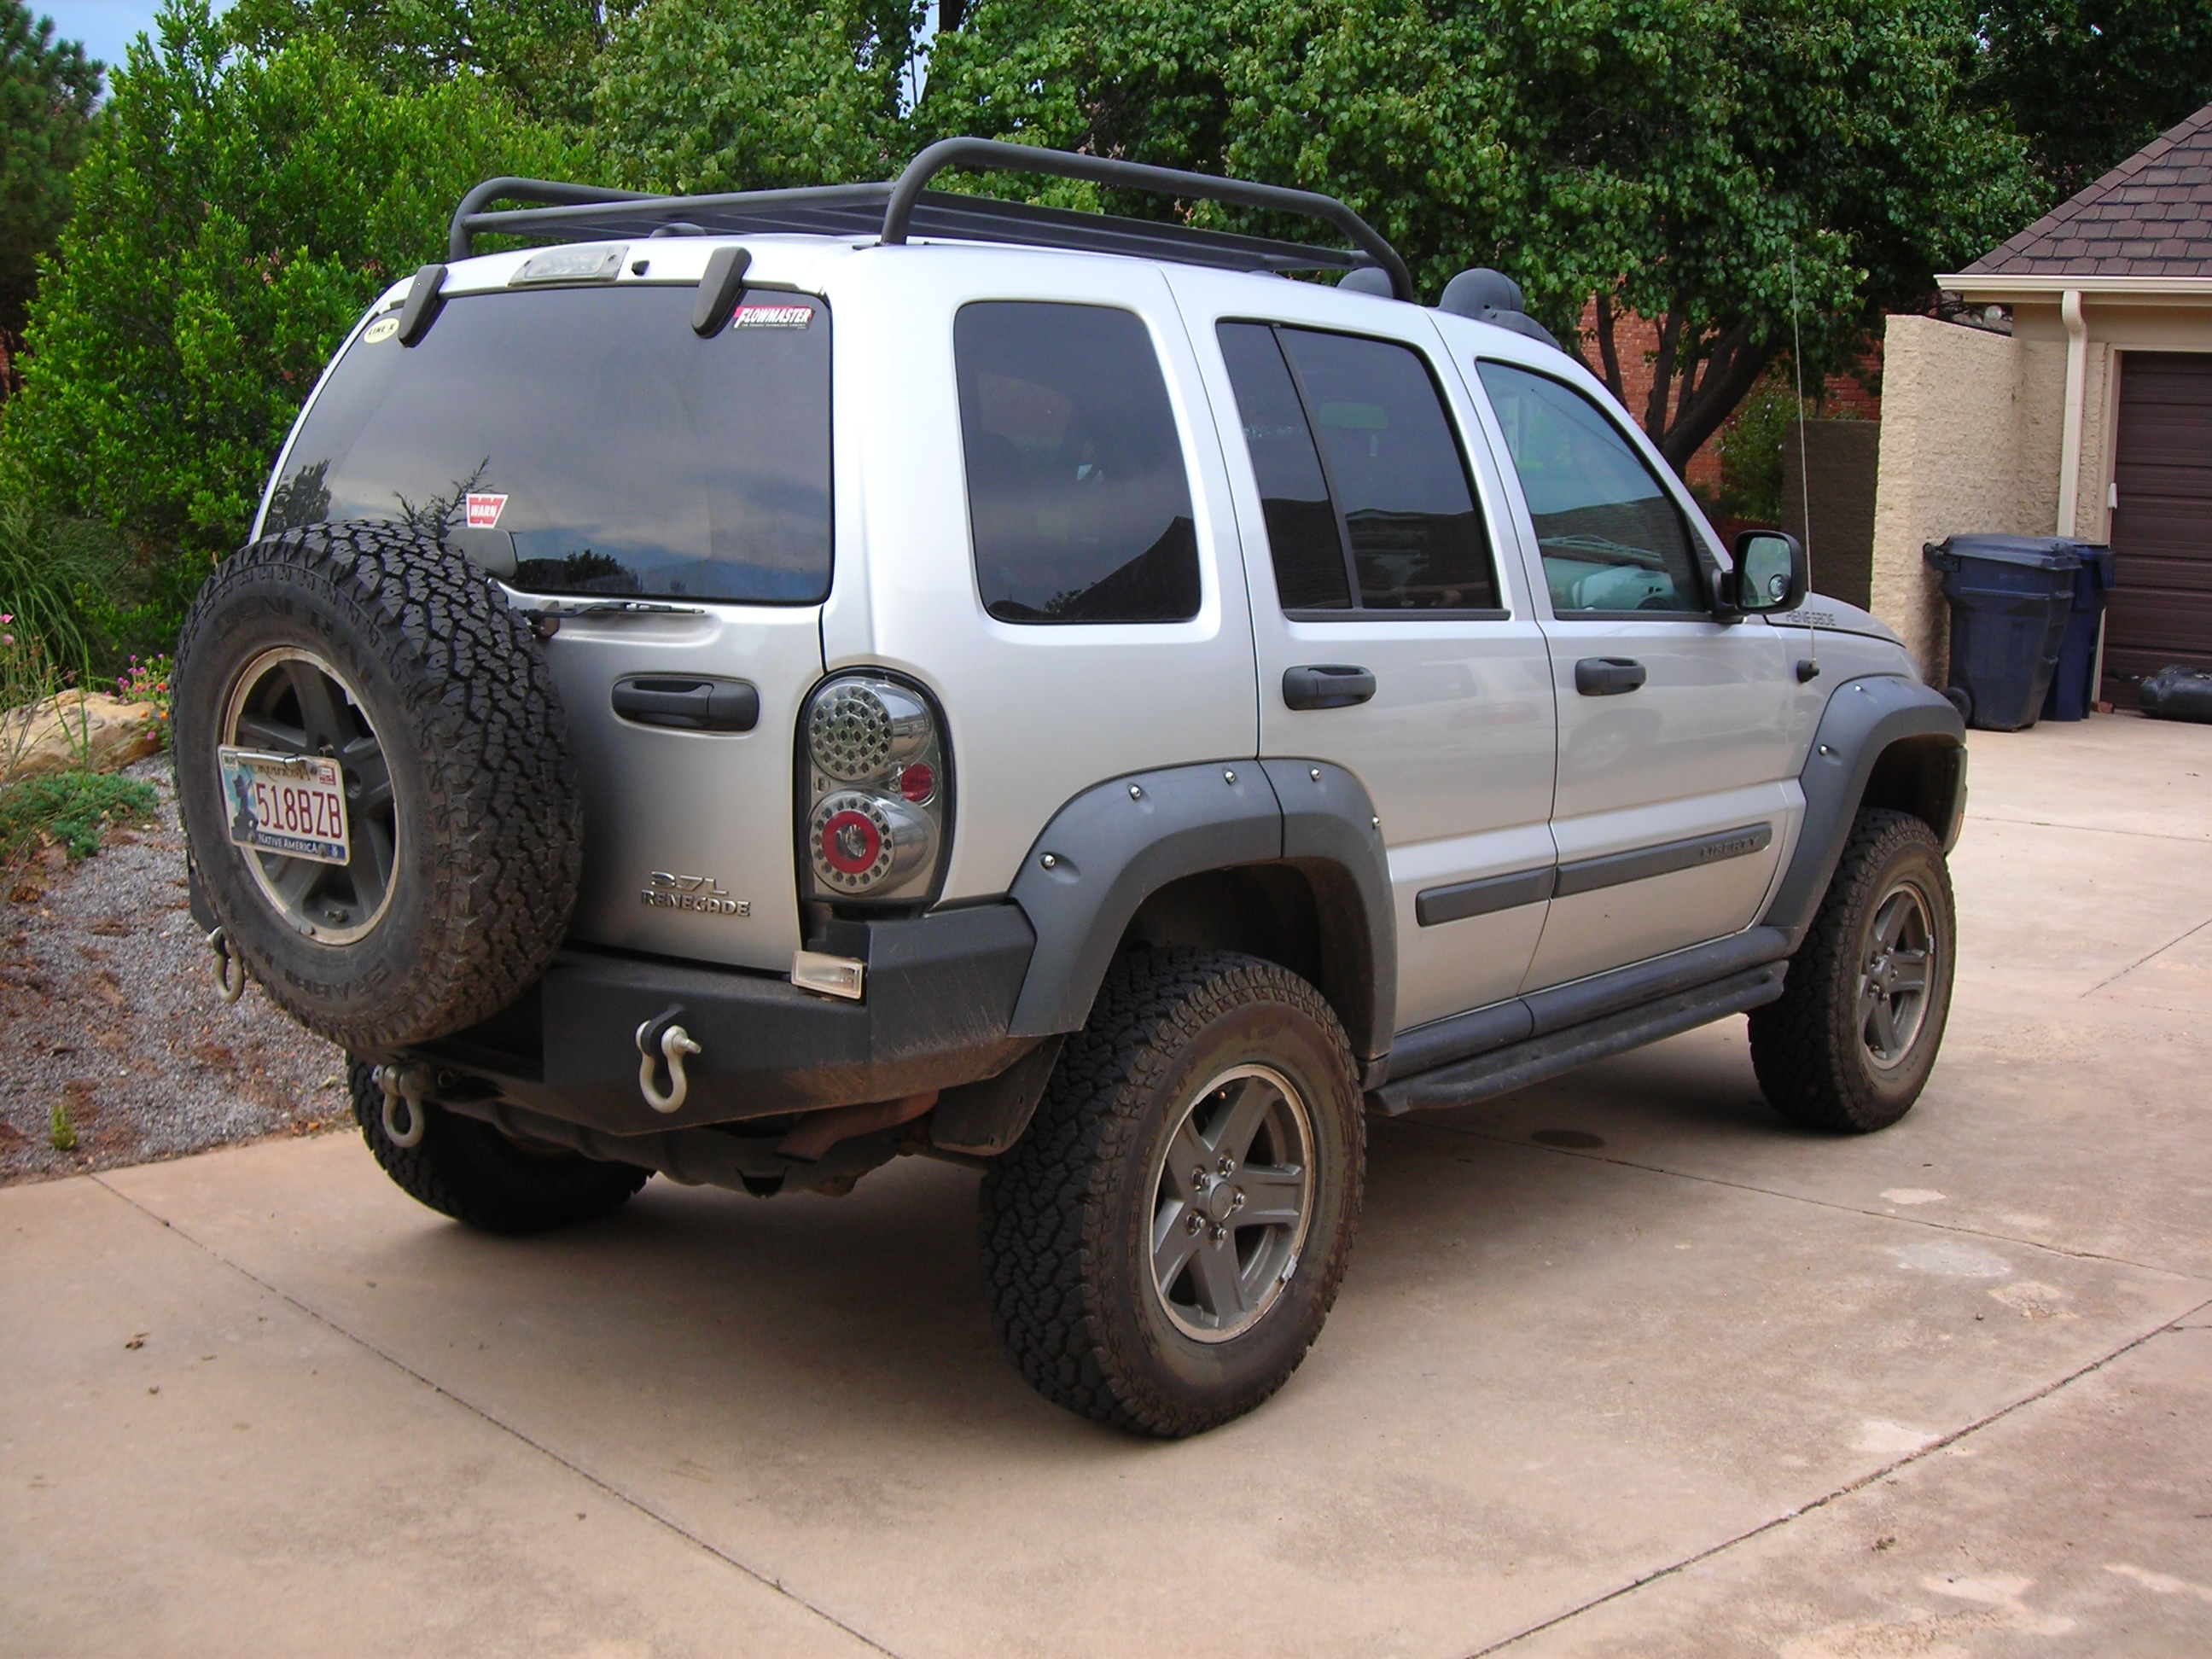 Thule Roof Carrier Roof Racks/Cargo Carriers - Page 2 - Jeep Liberty Forum ...